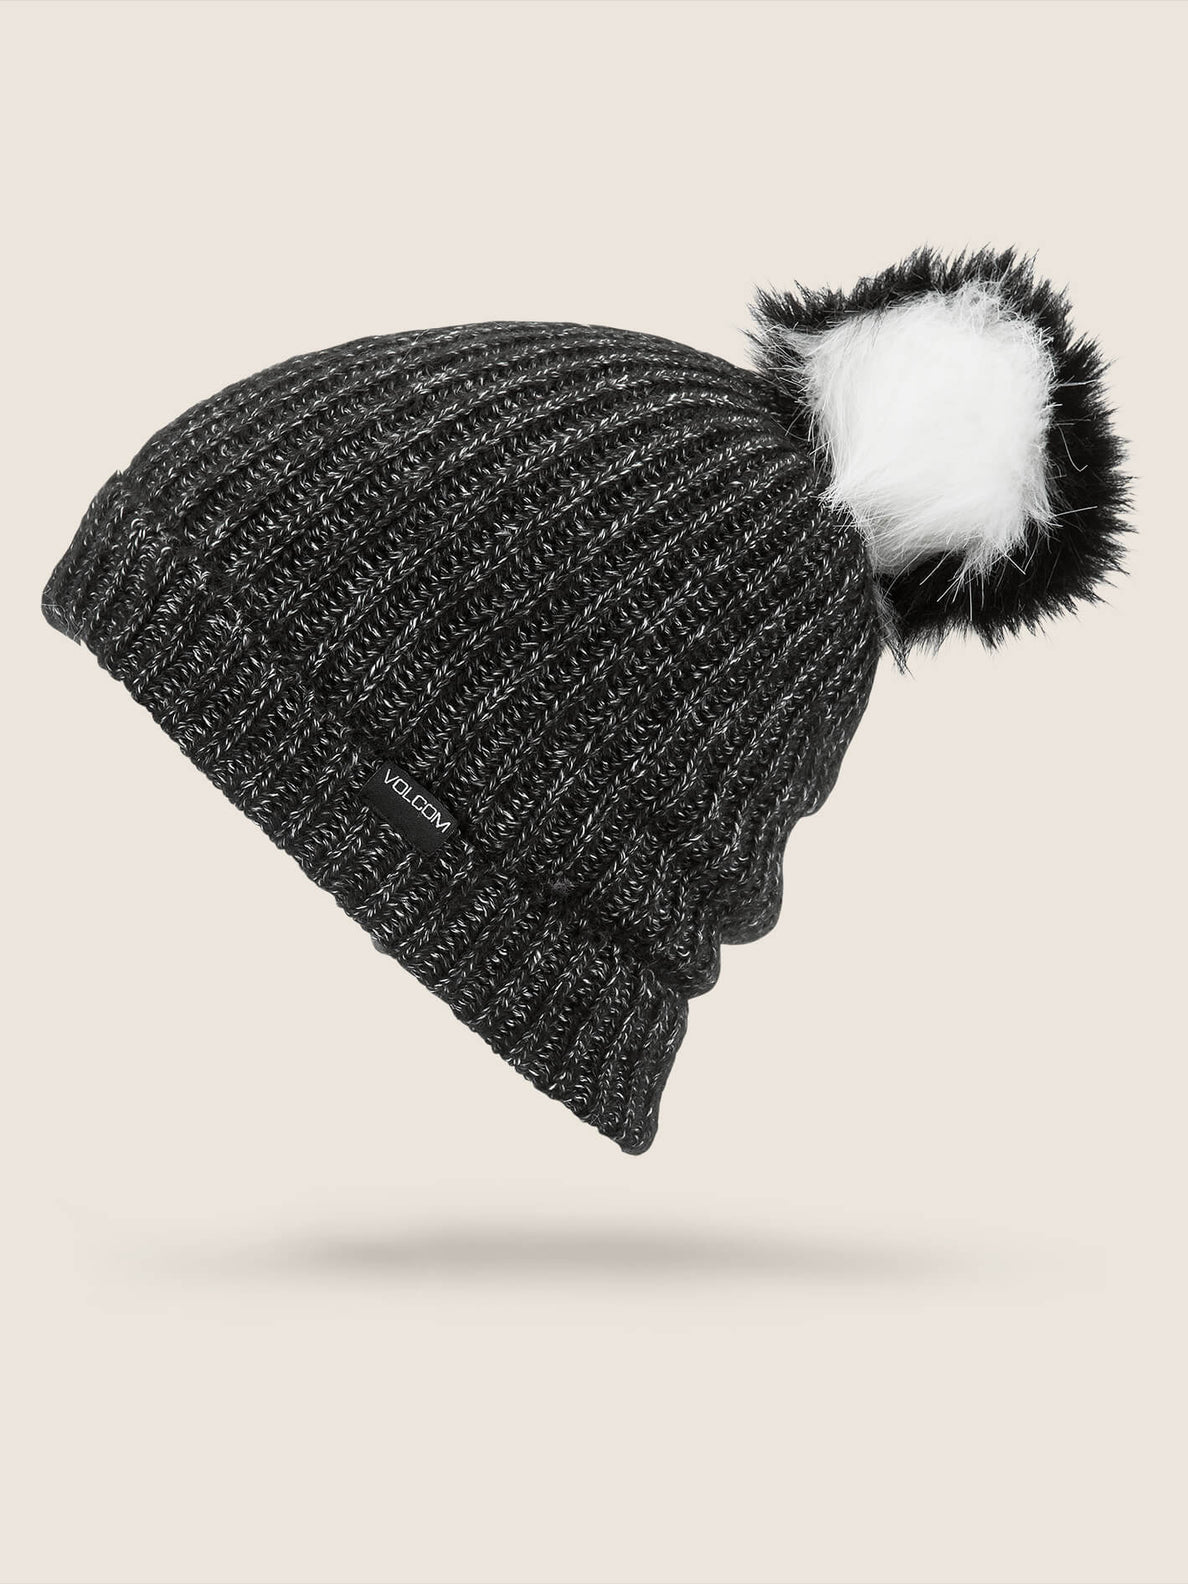 Lula Beanie In Black, Front View